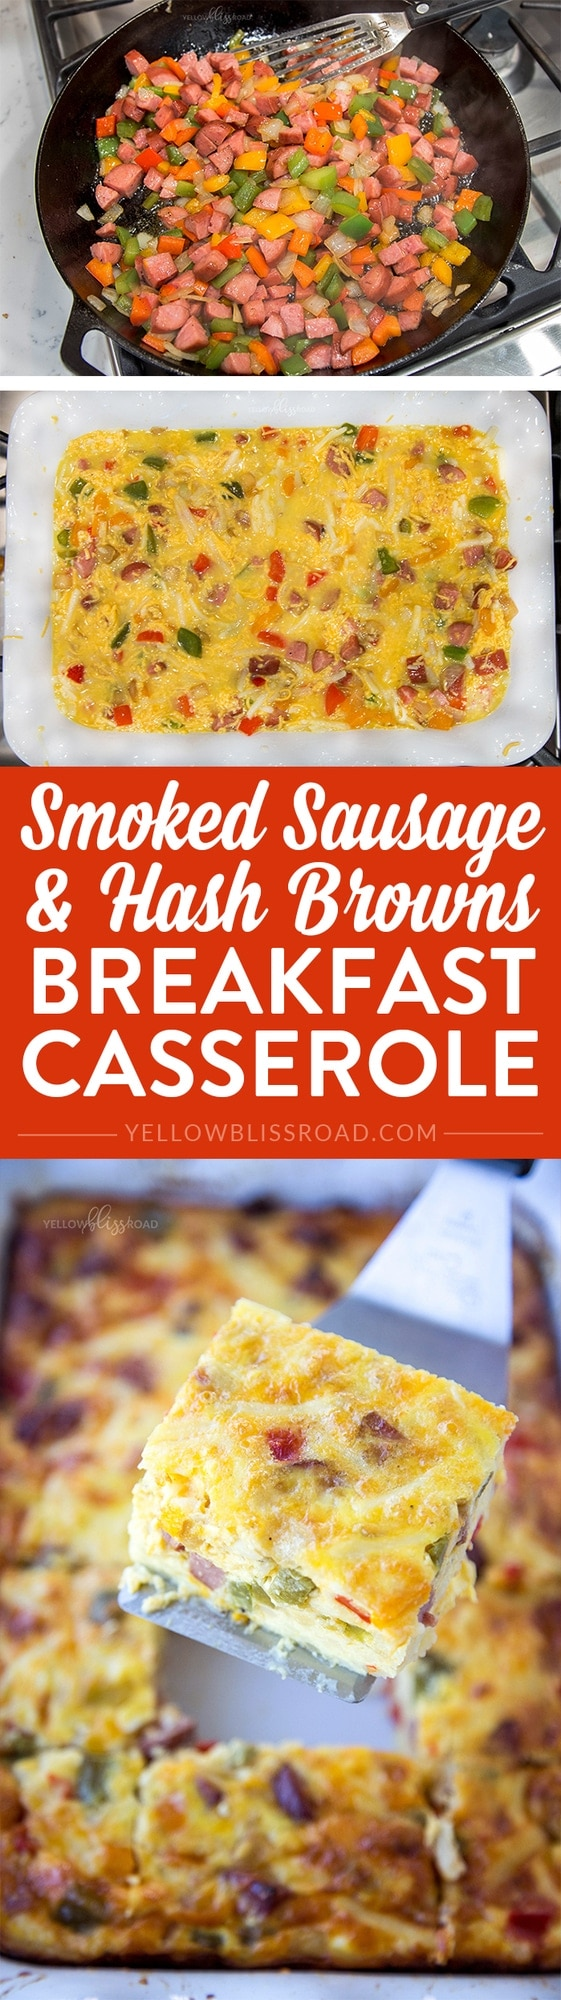 Smoked Sausage & Hash Brown Breakfast Casserole - A hearty, cheesy and savory breakfast casserole that's perfect for brunch or anytime you need to feed a crowd